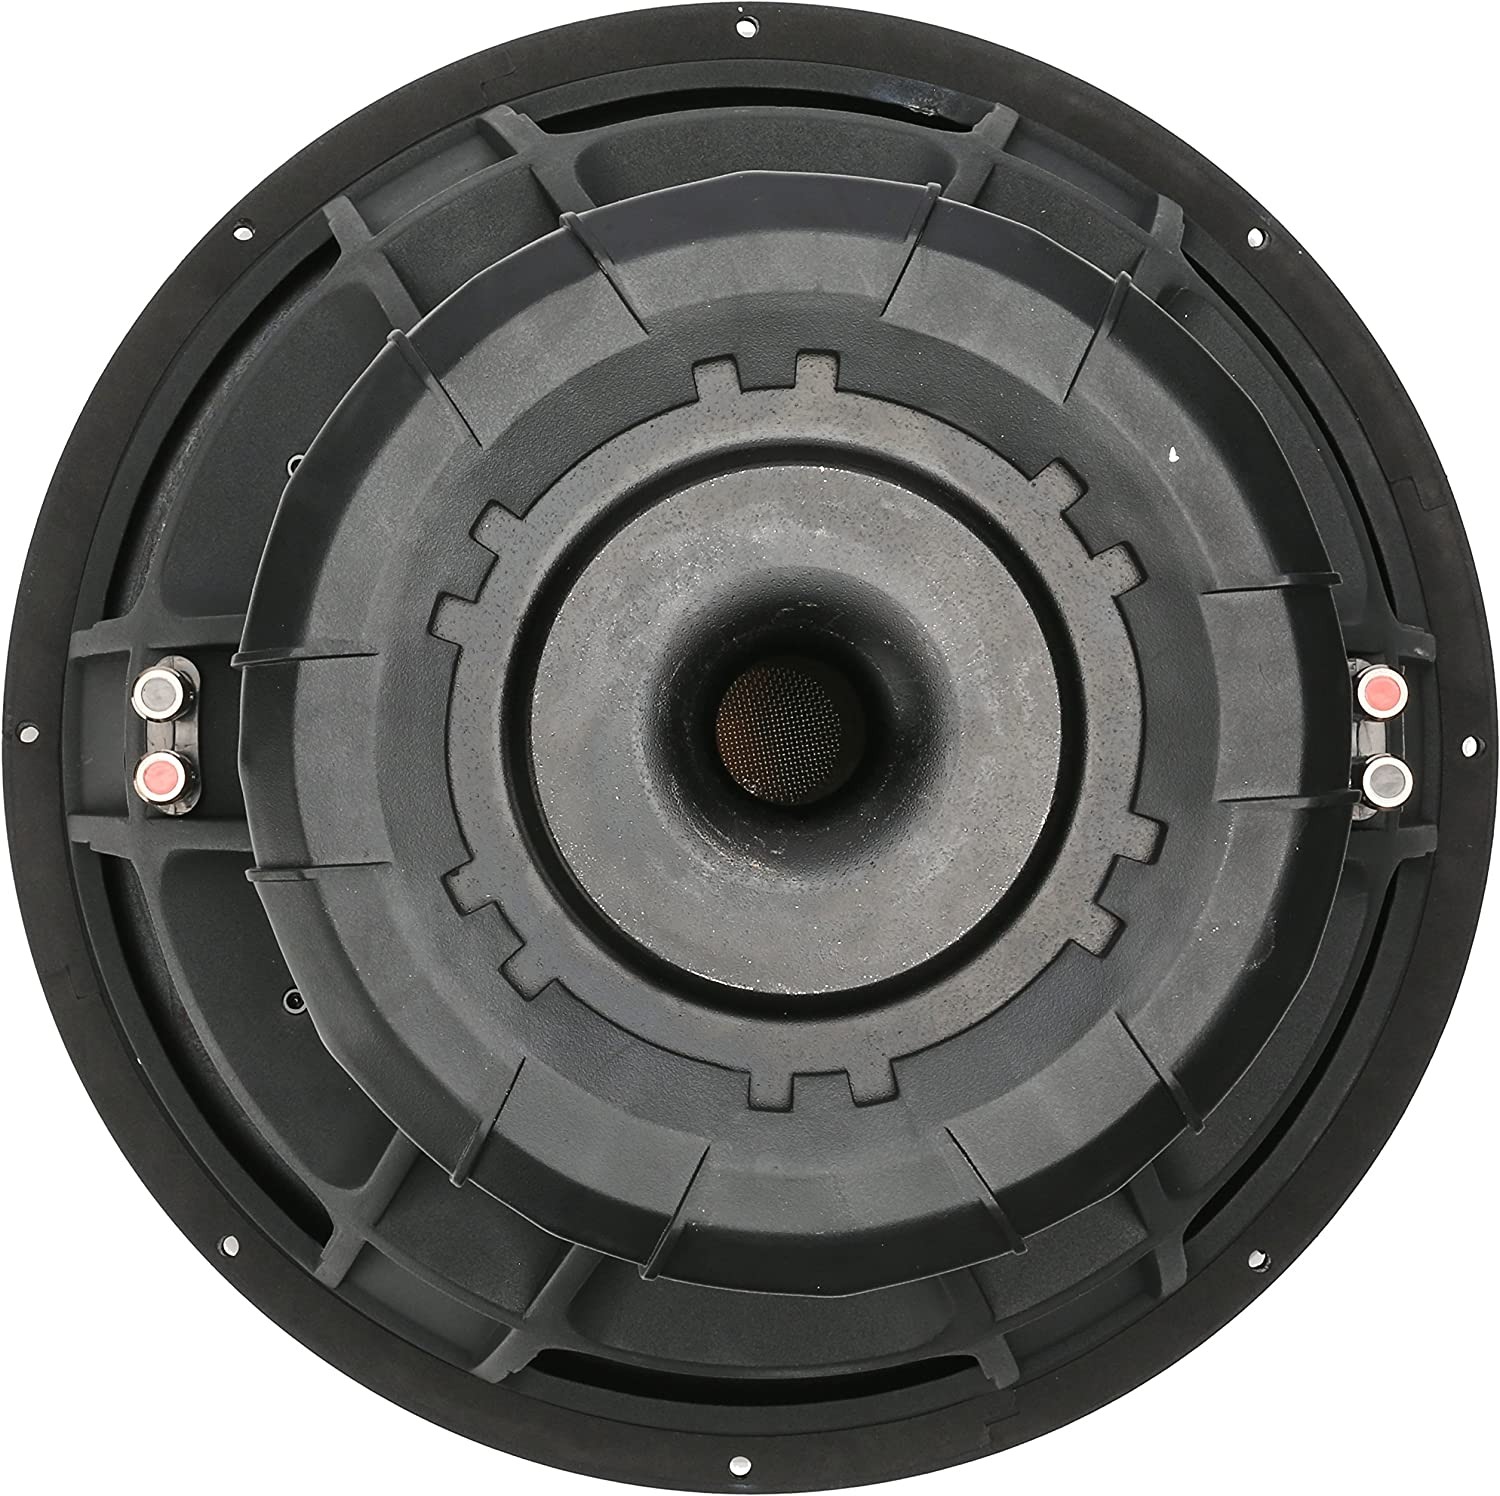 CERWIN VEGA ST152D Stroker 2400 Watts 2 Ohms//1200Watts RMS Power Handling Max 15-Inch Dual Voice Coil